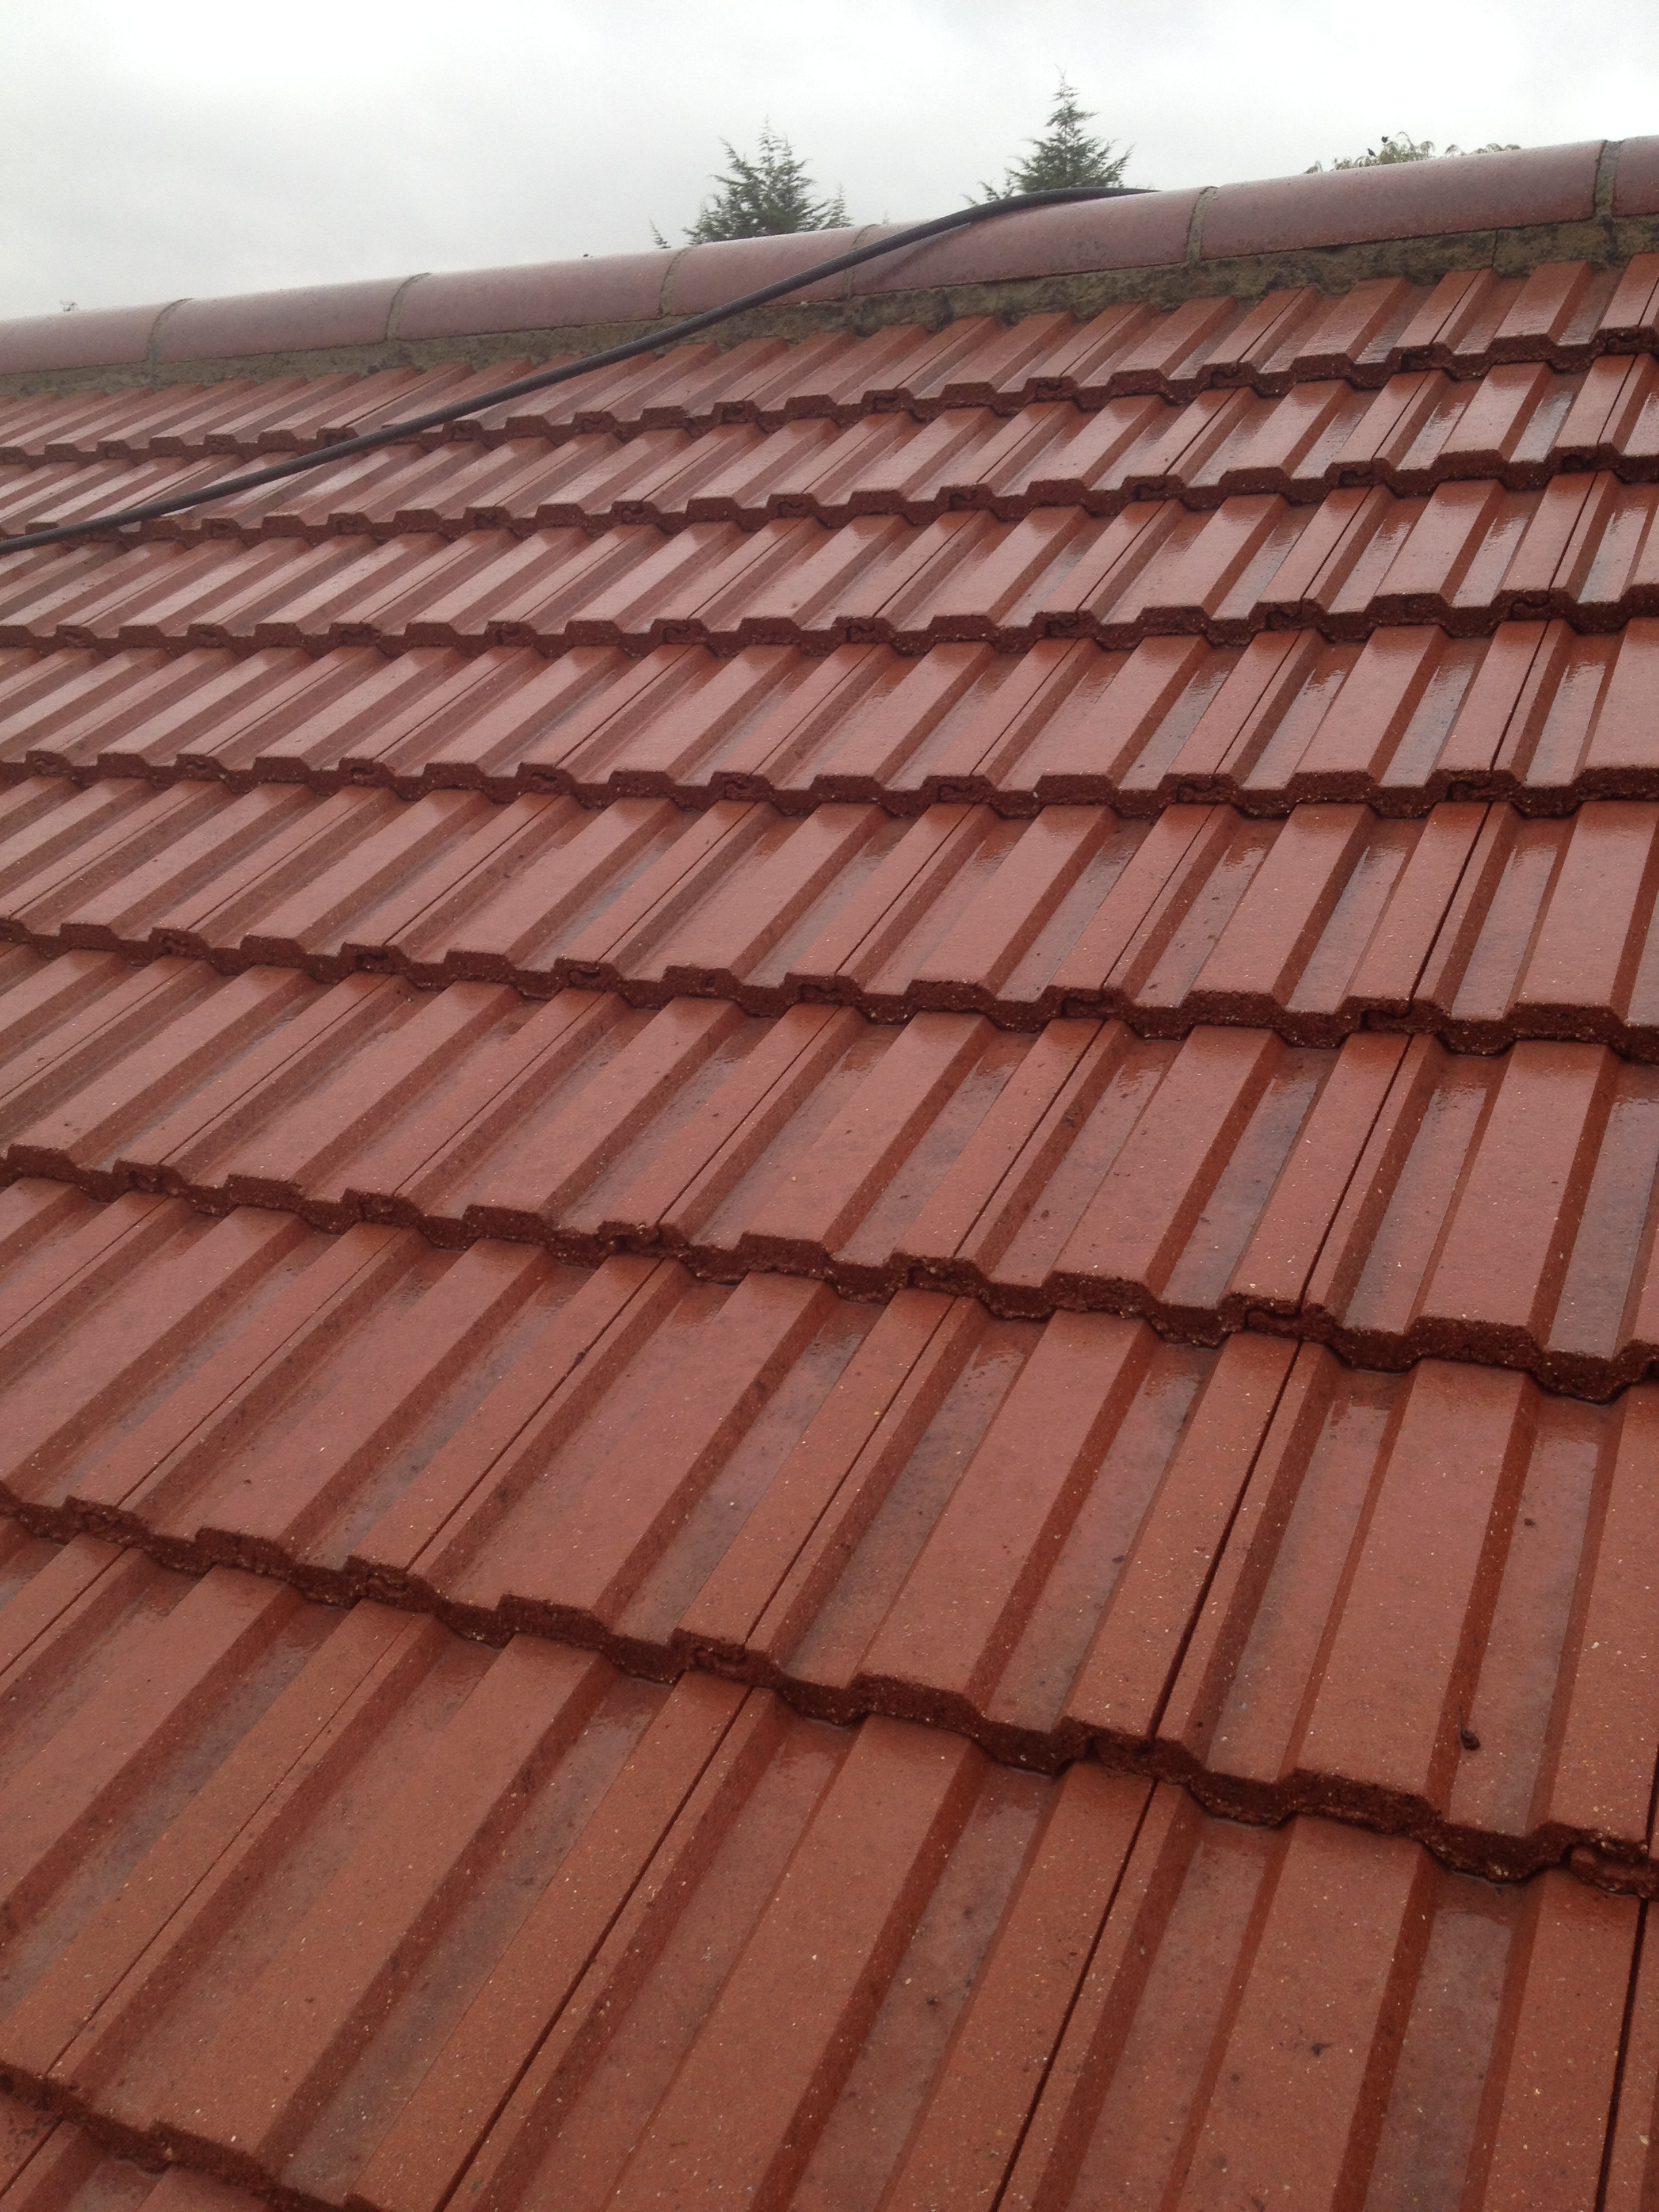 Dirty Garage Roof Kenton Clean Roof Harrow